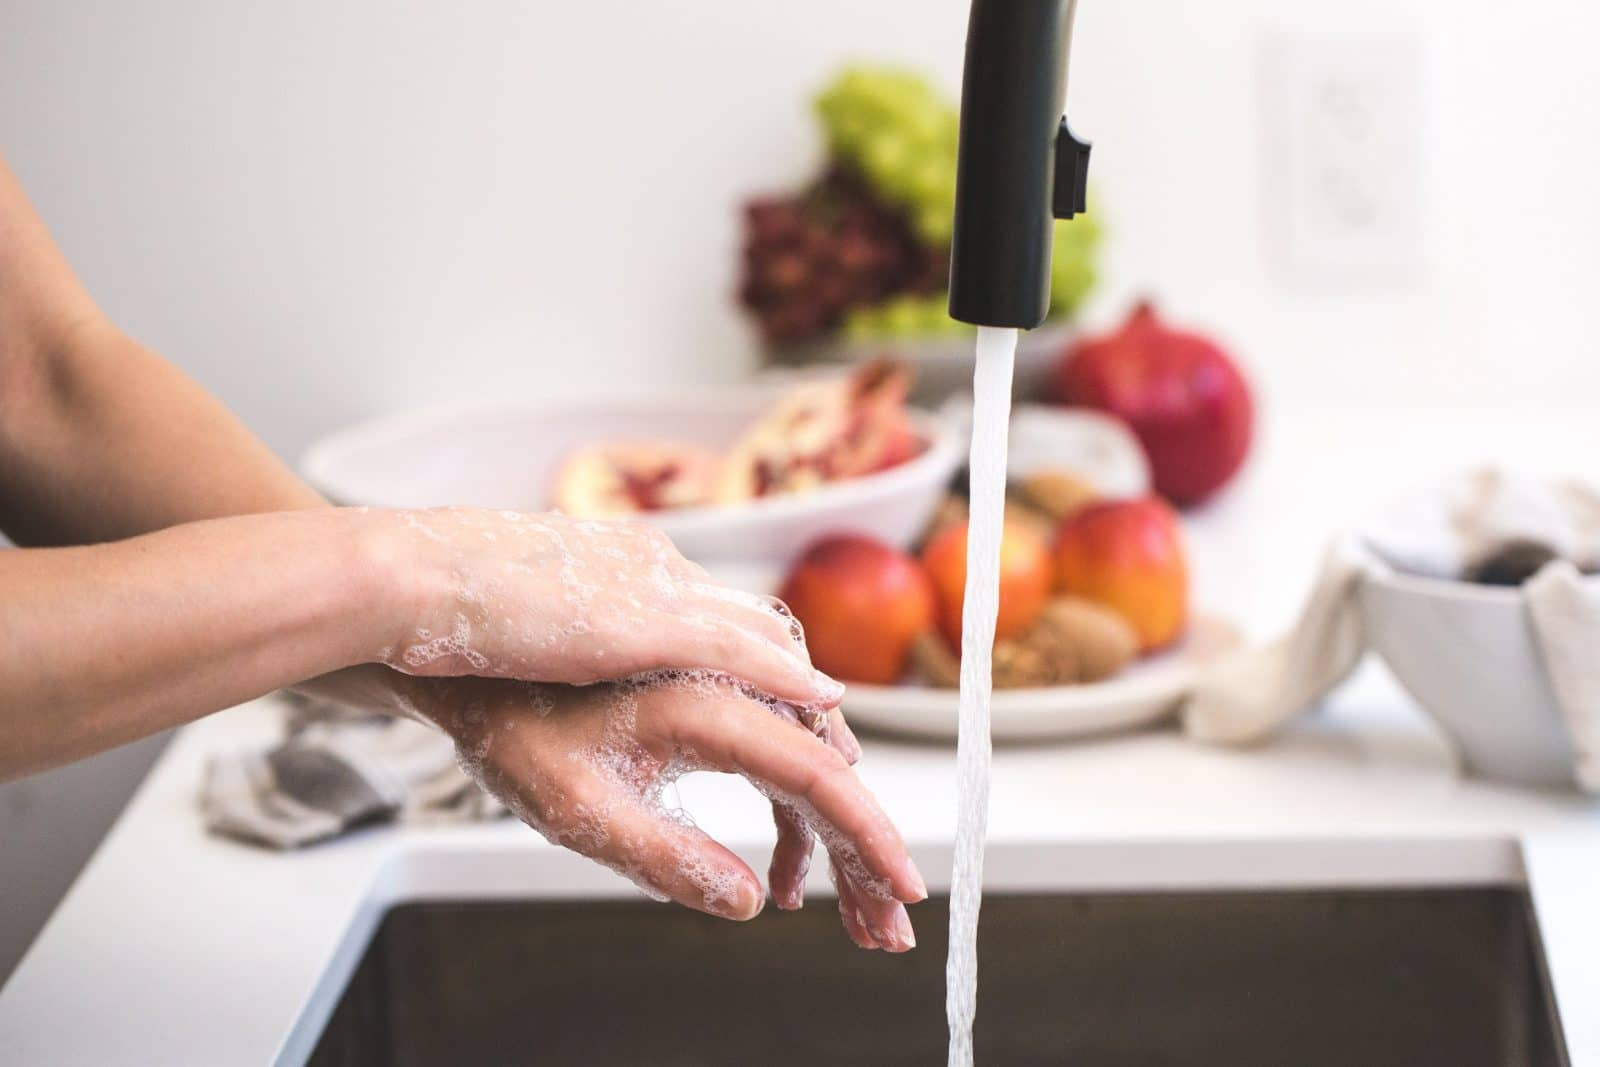 washing hands in the kitchen before dehydrating the meat